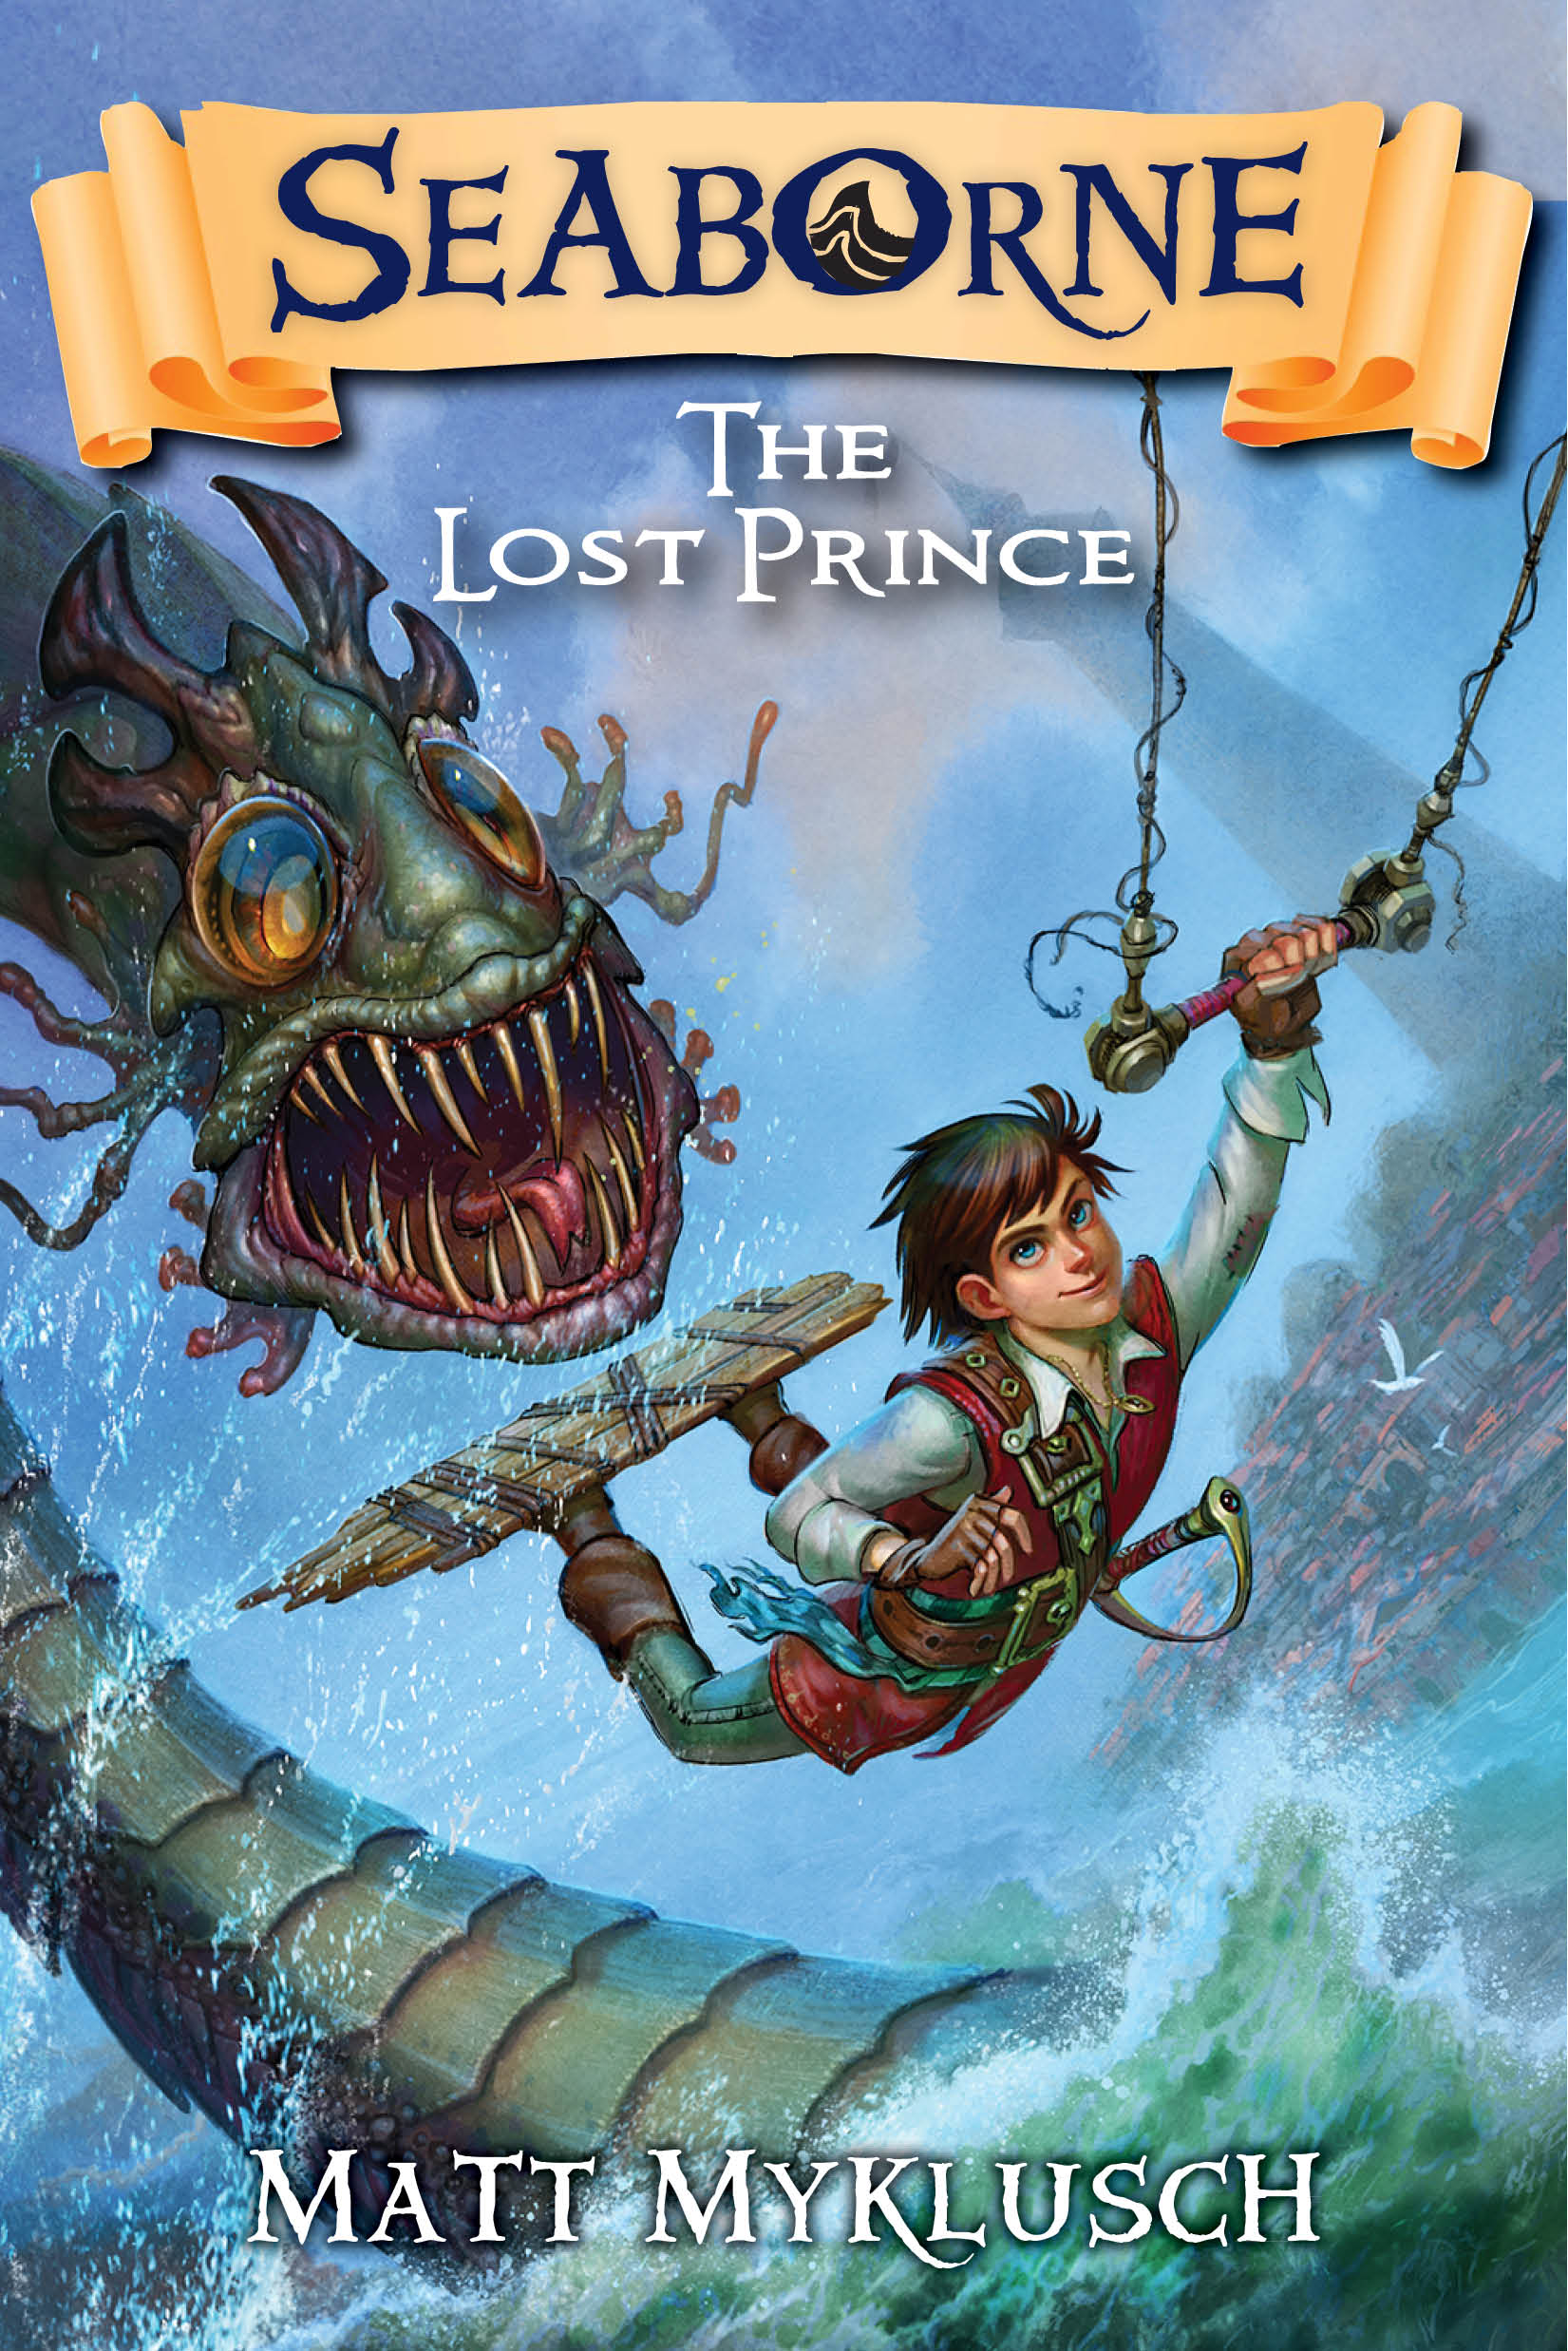 Image result for SEABORNE THE LOST PRINCE